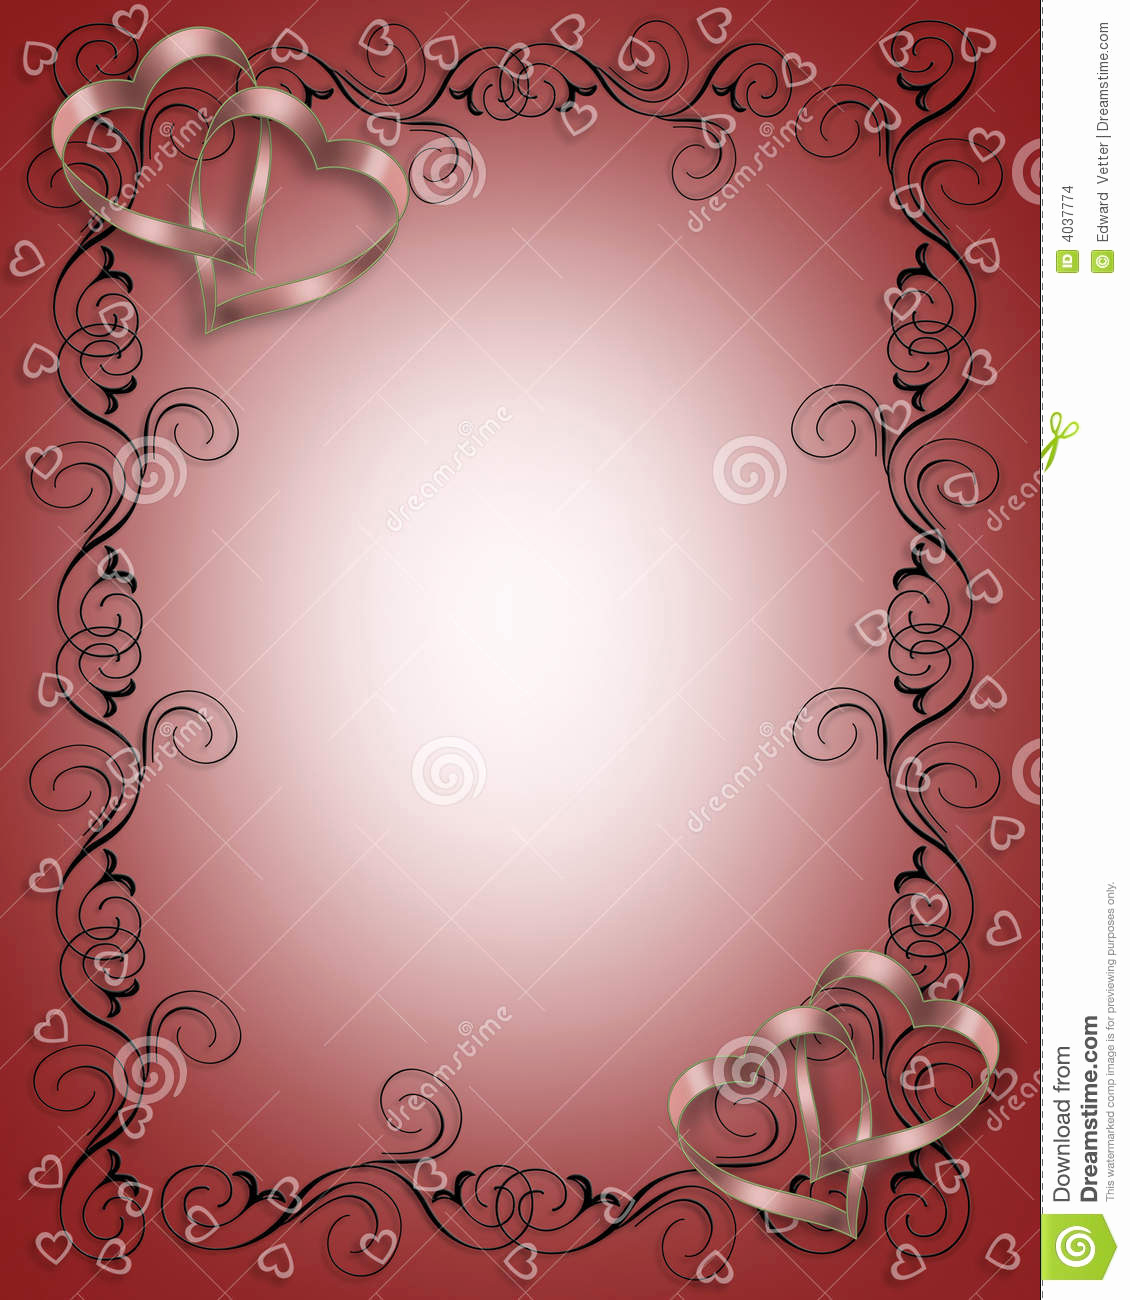 Wedding Invitation Border Design Beautiful Wedding Invitation Border Red Stock Image